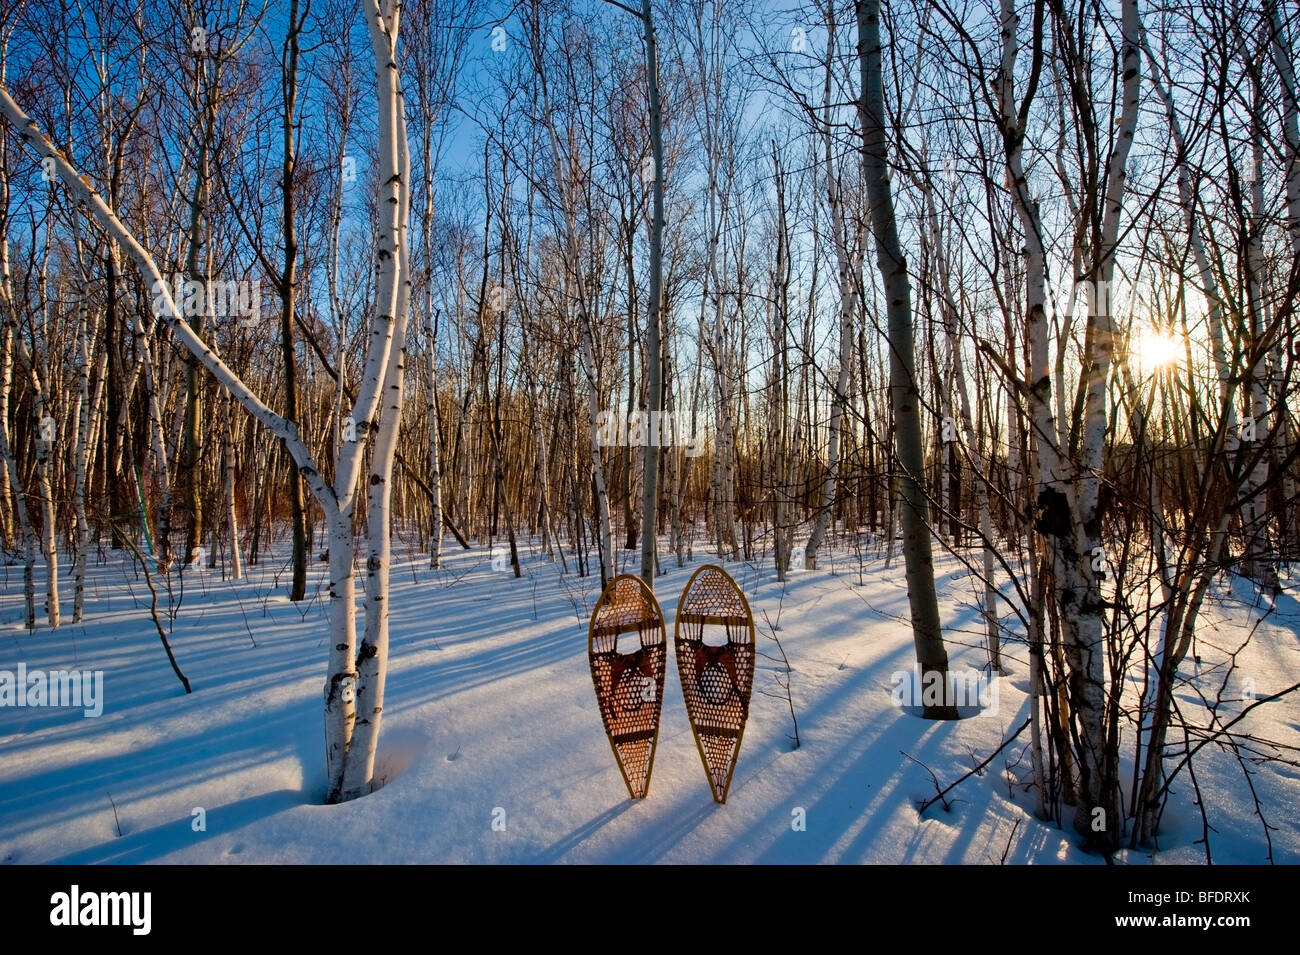 Birch (Betula papyrifera) forest and snowshoes in early spring, Mount Nemo Conservation Area near Burlington, Ontario, - Stock Image